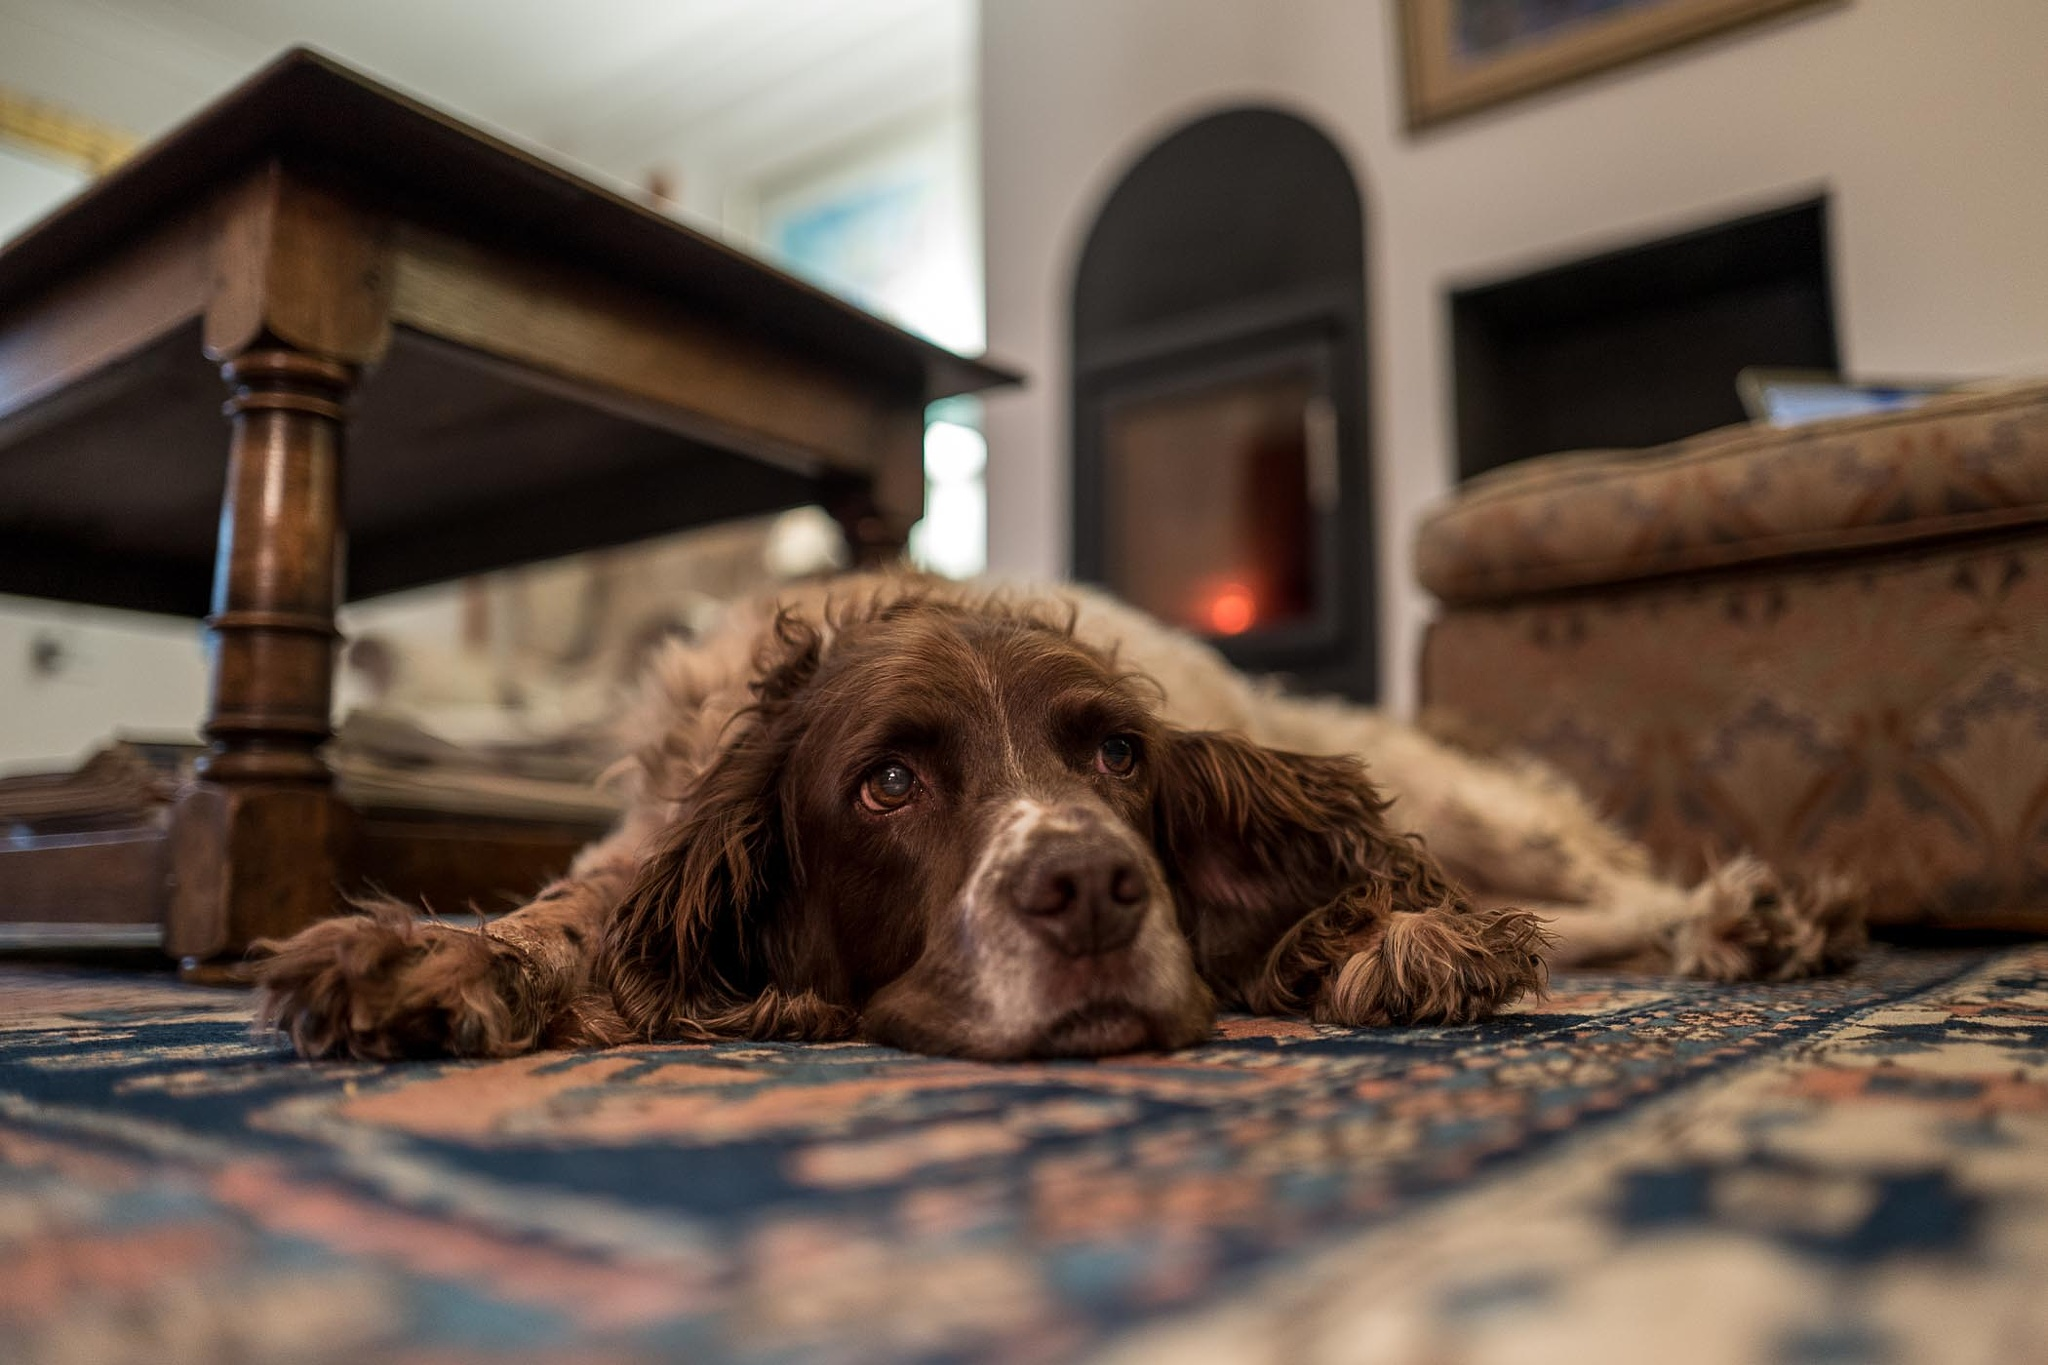 Woody by the Log Fire by mike hughes